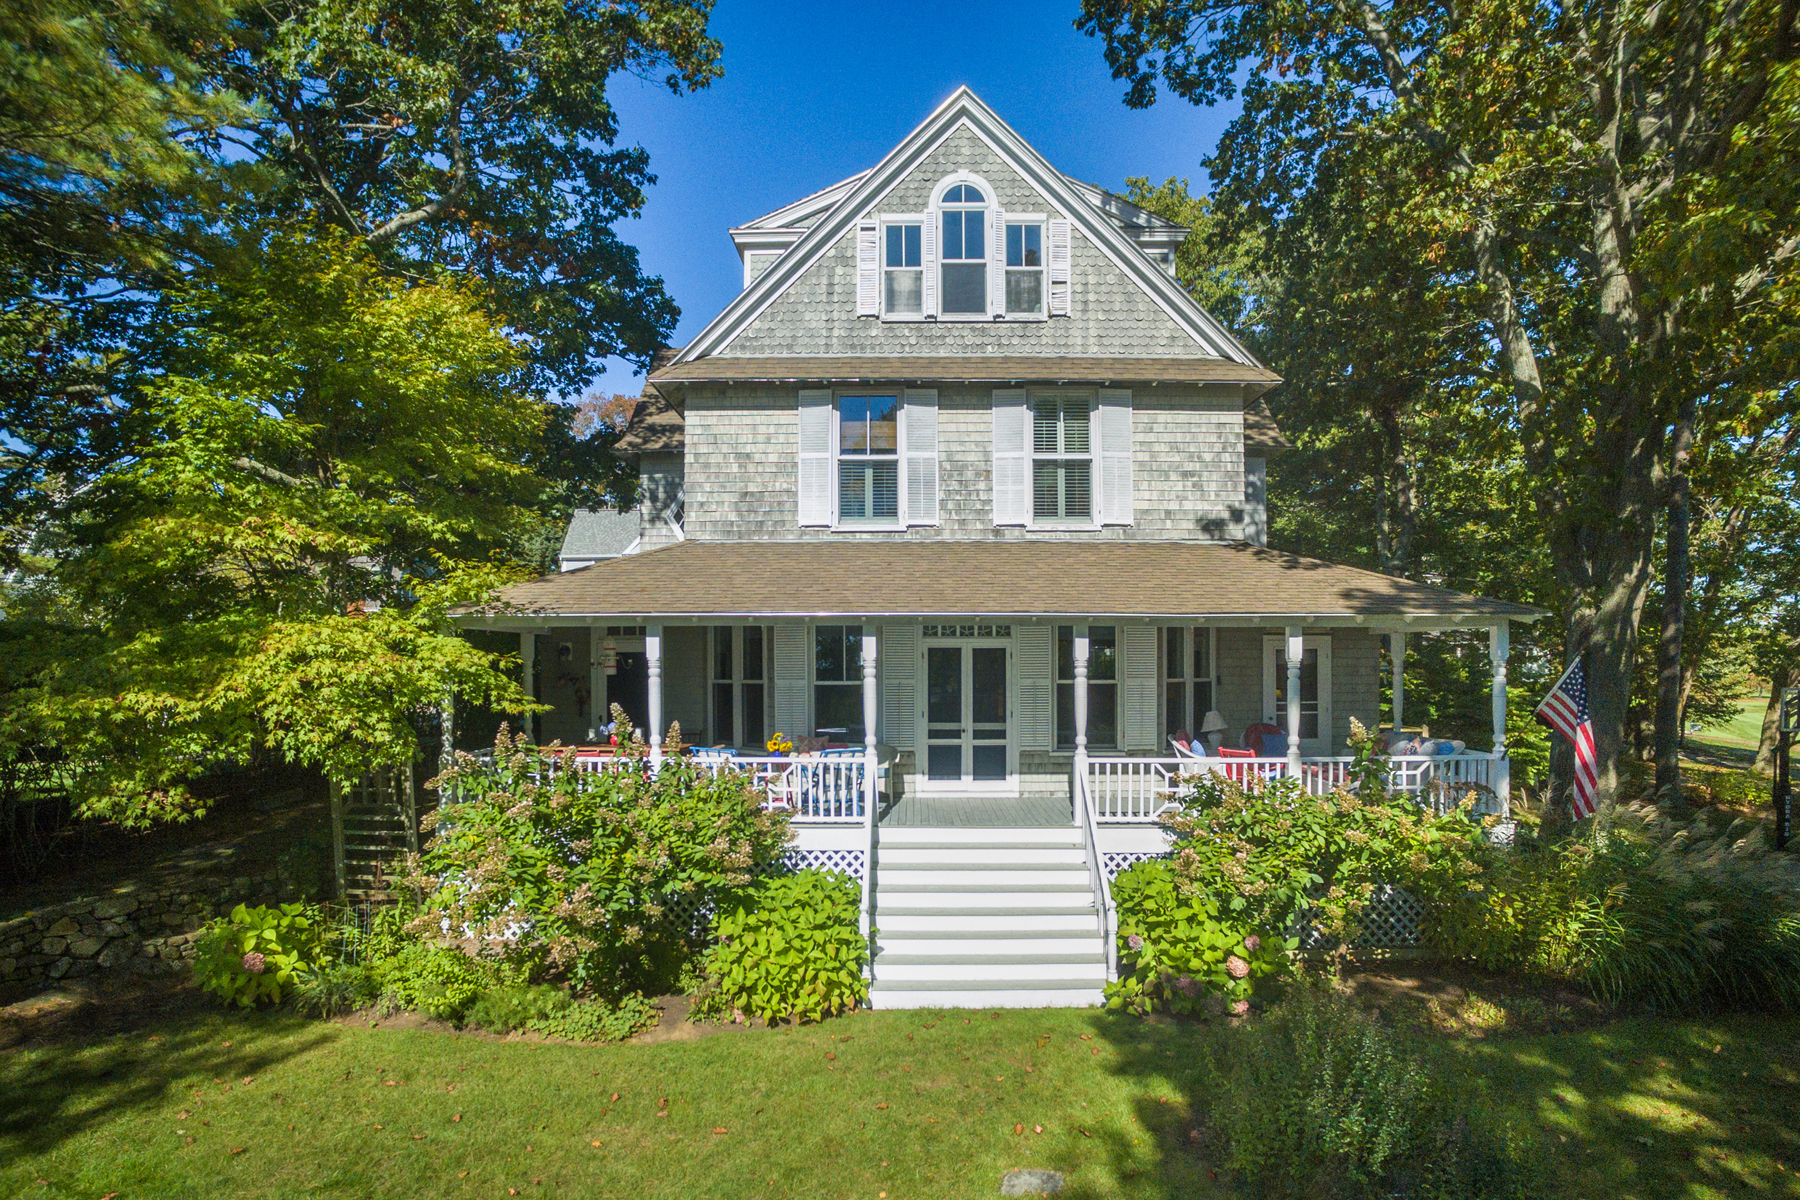 Single Family Home for Sale at 10 Oak Street 10 Oak Street Kennebunk, Maine 04043 United States